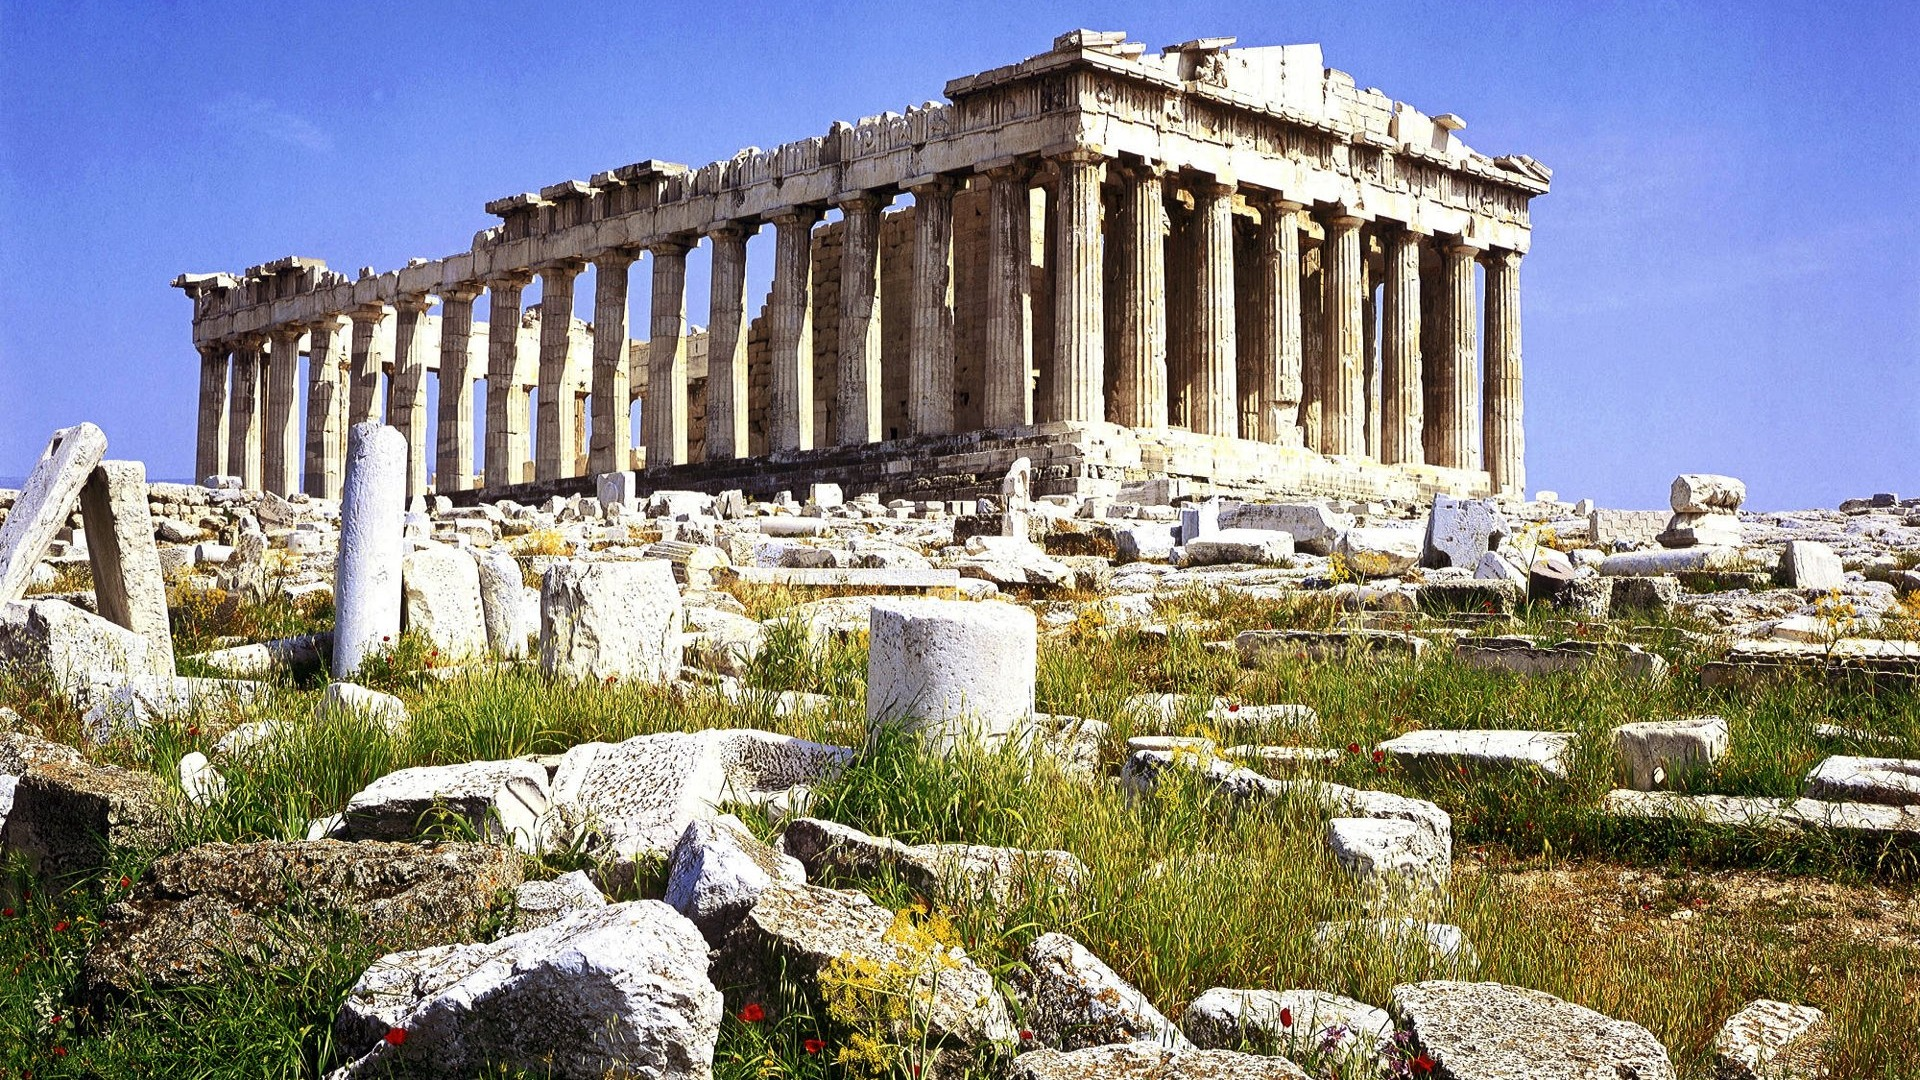 Athens Greece-Parthenon wallpaper - 1920x1080 wallpaper download